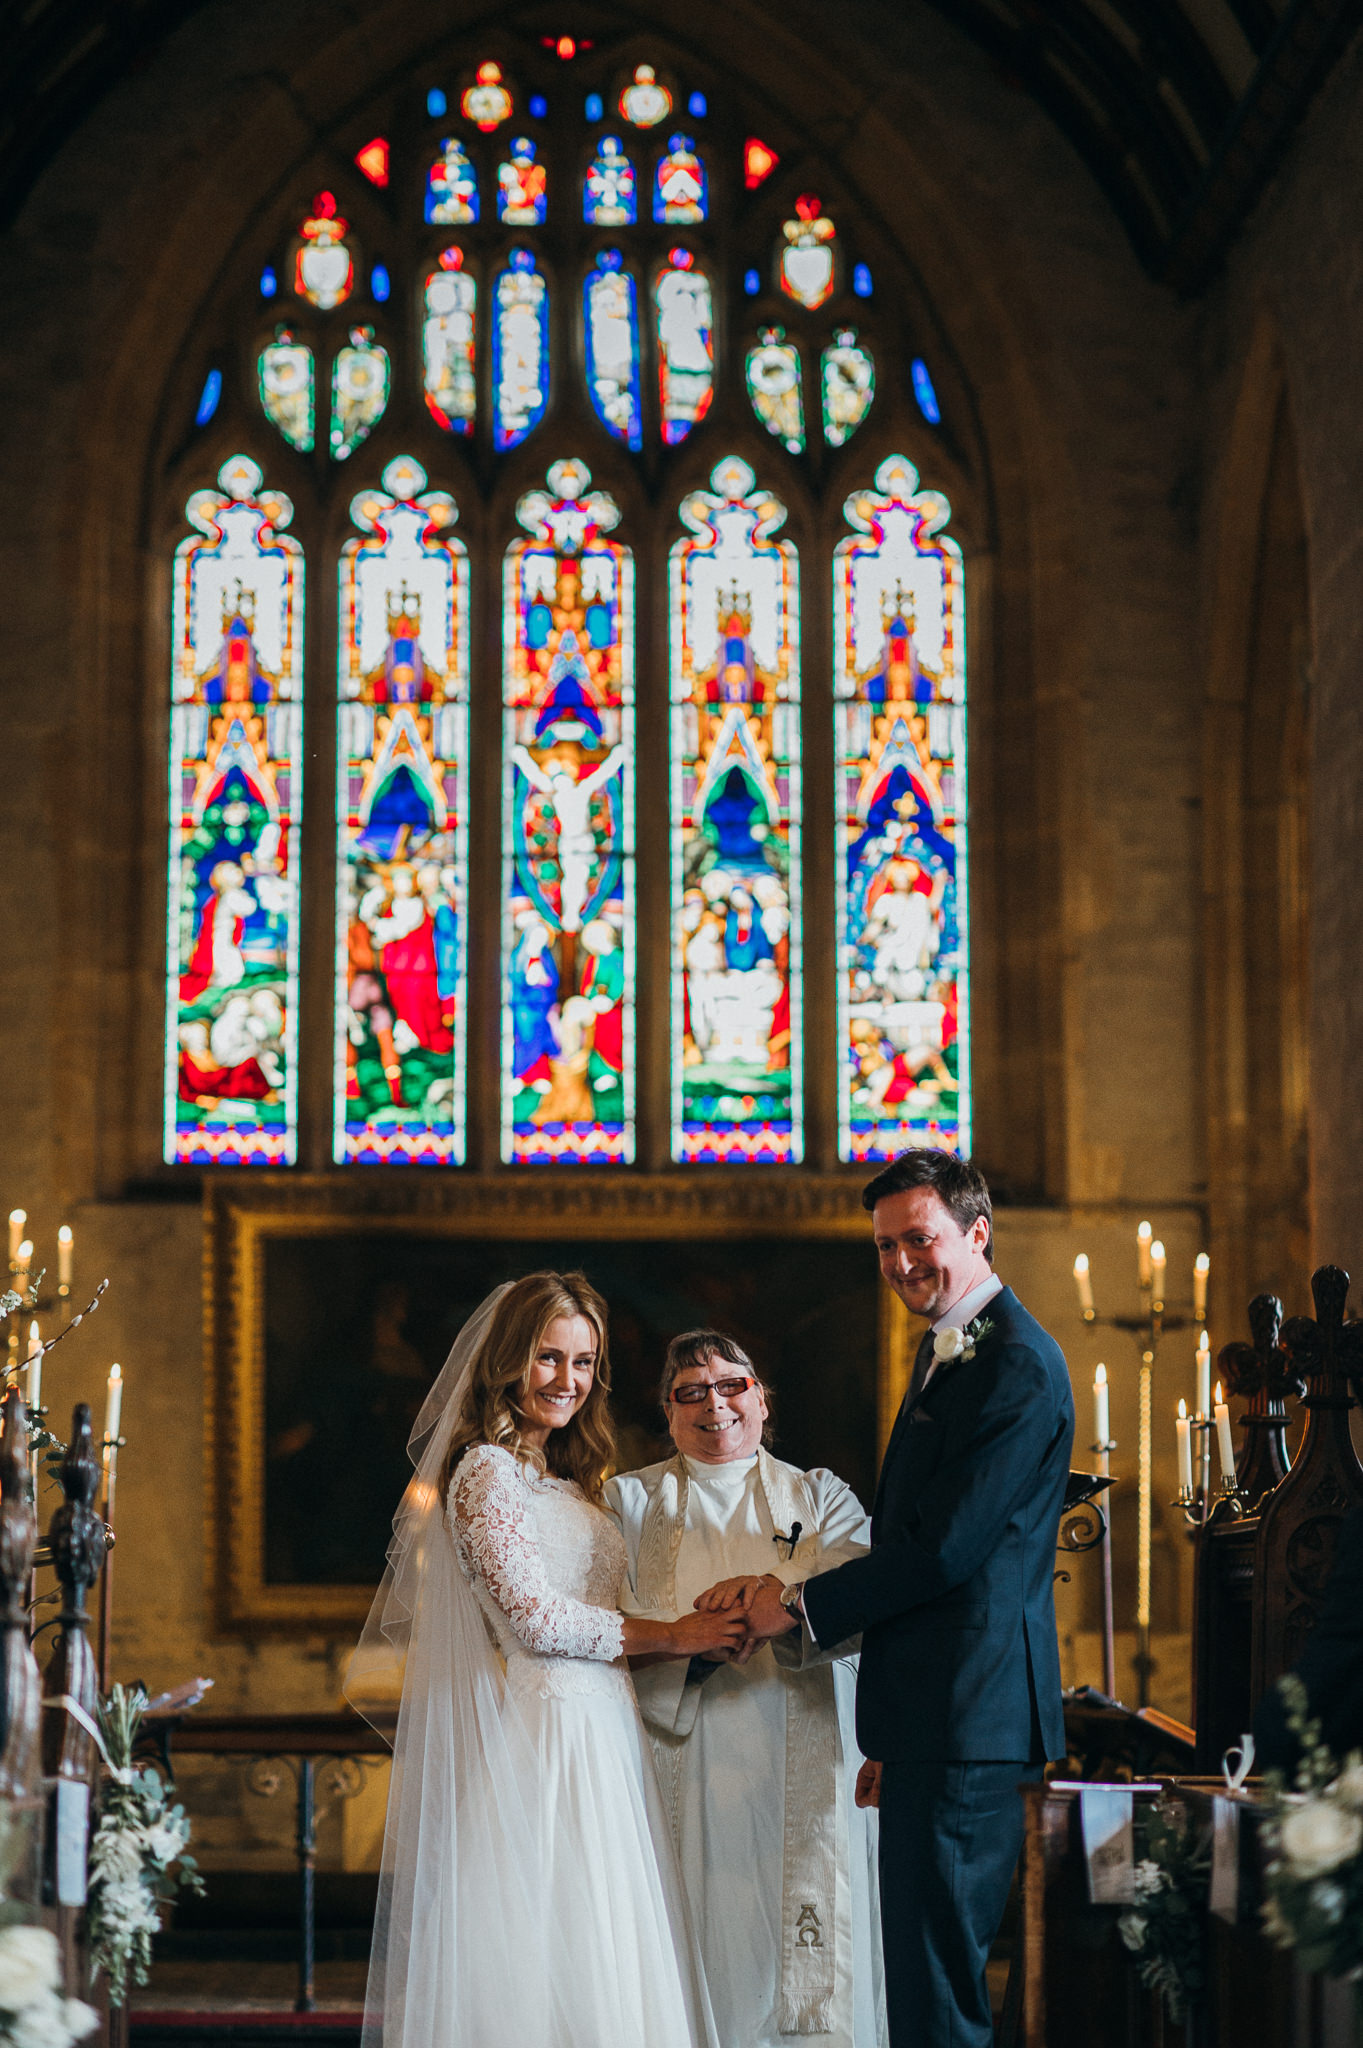 Bride and Groom exchange rings during wedding service at Church of St Peter and St Paul, Muchelney